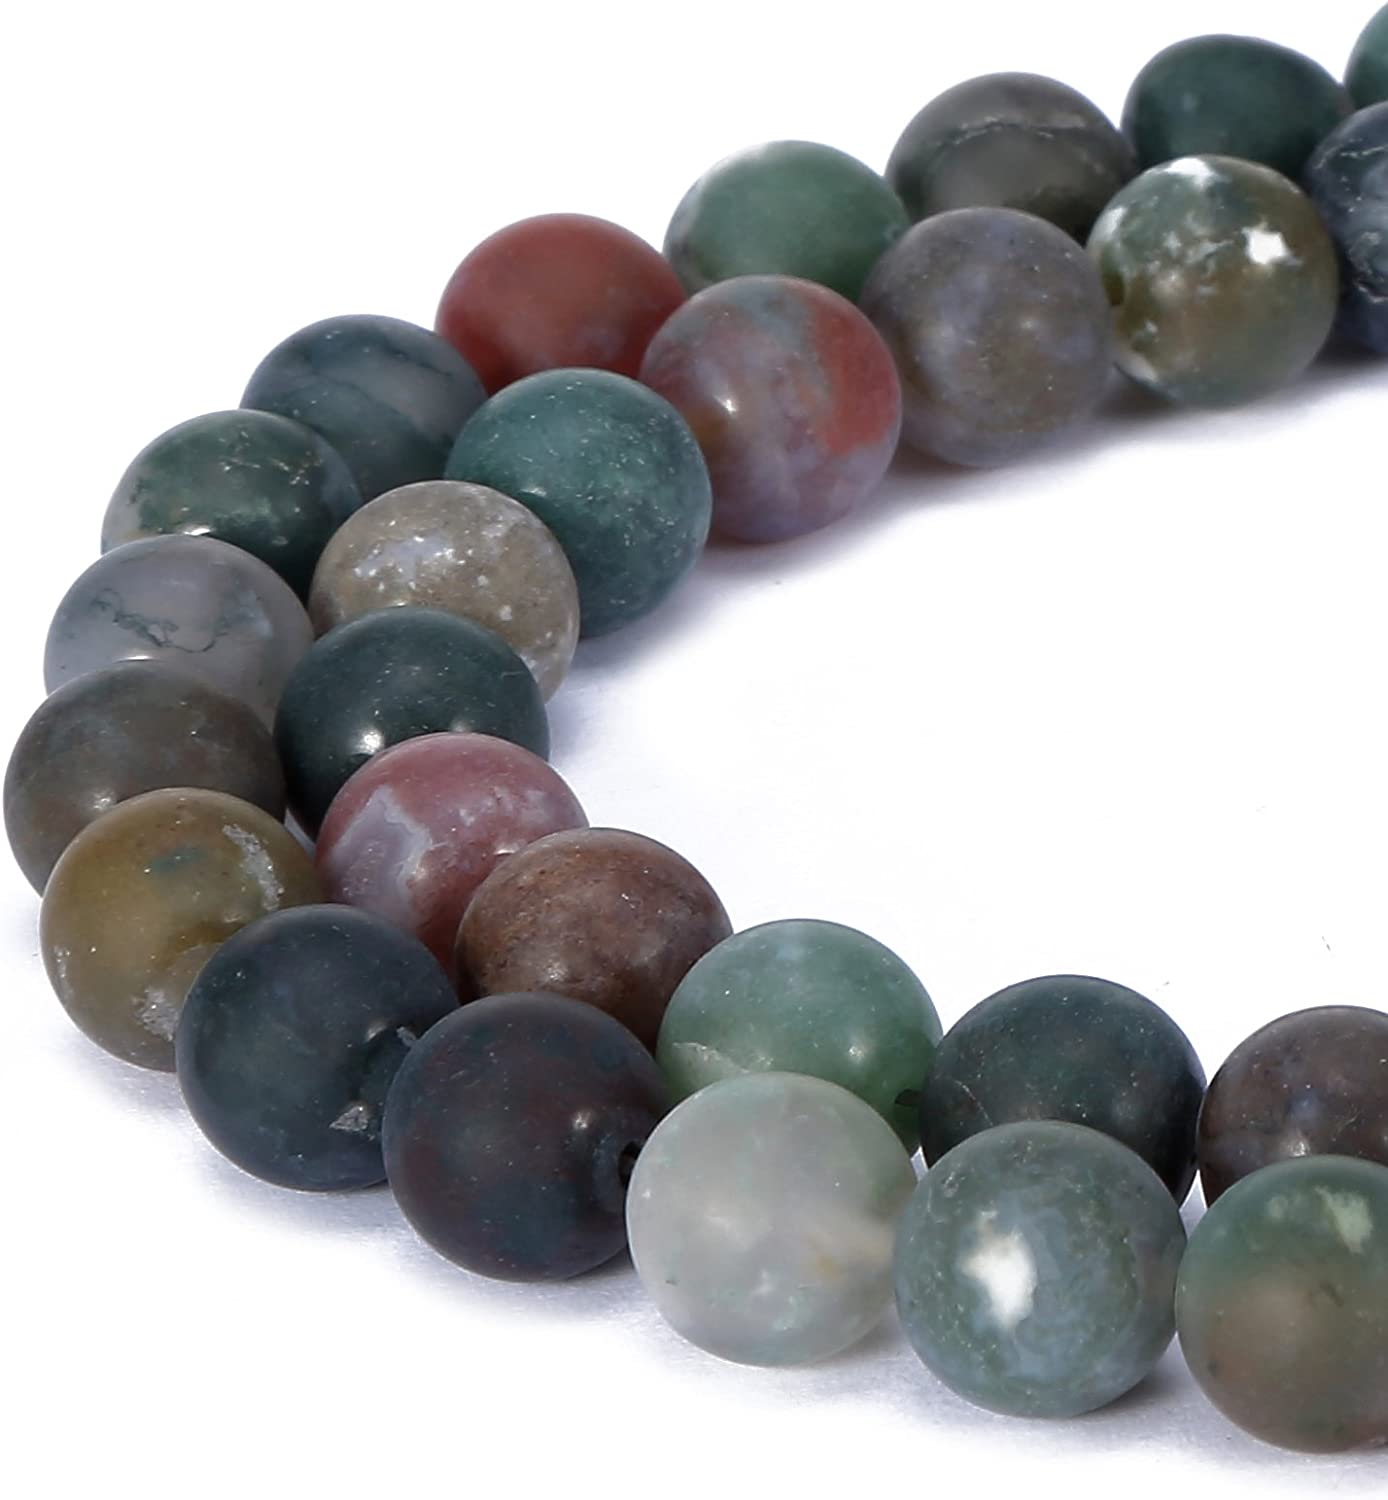 BRCbeads Chinese Turquoise Natural Gemstone Loose Beads 10mm Matte Round Crystal Energy Stone Healing Power for Jewelry Making Dark Green